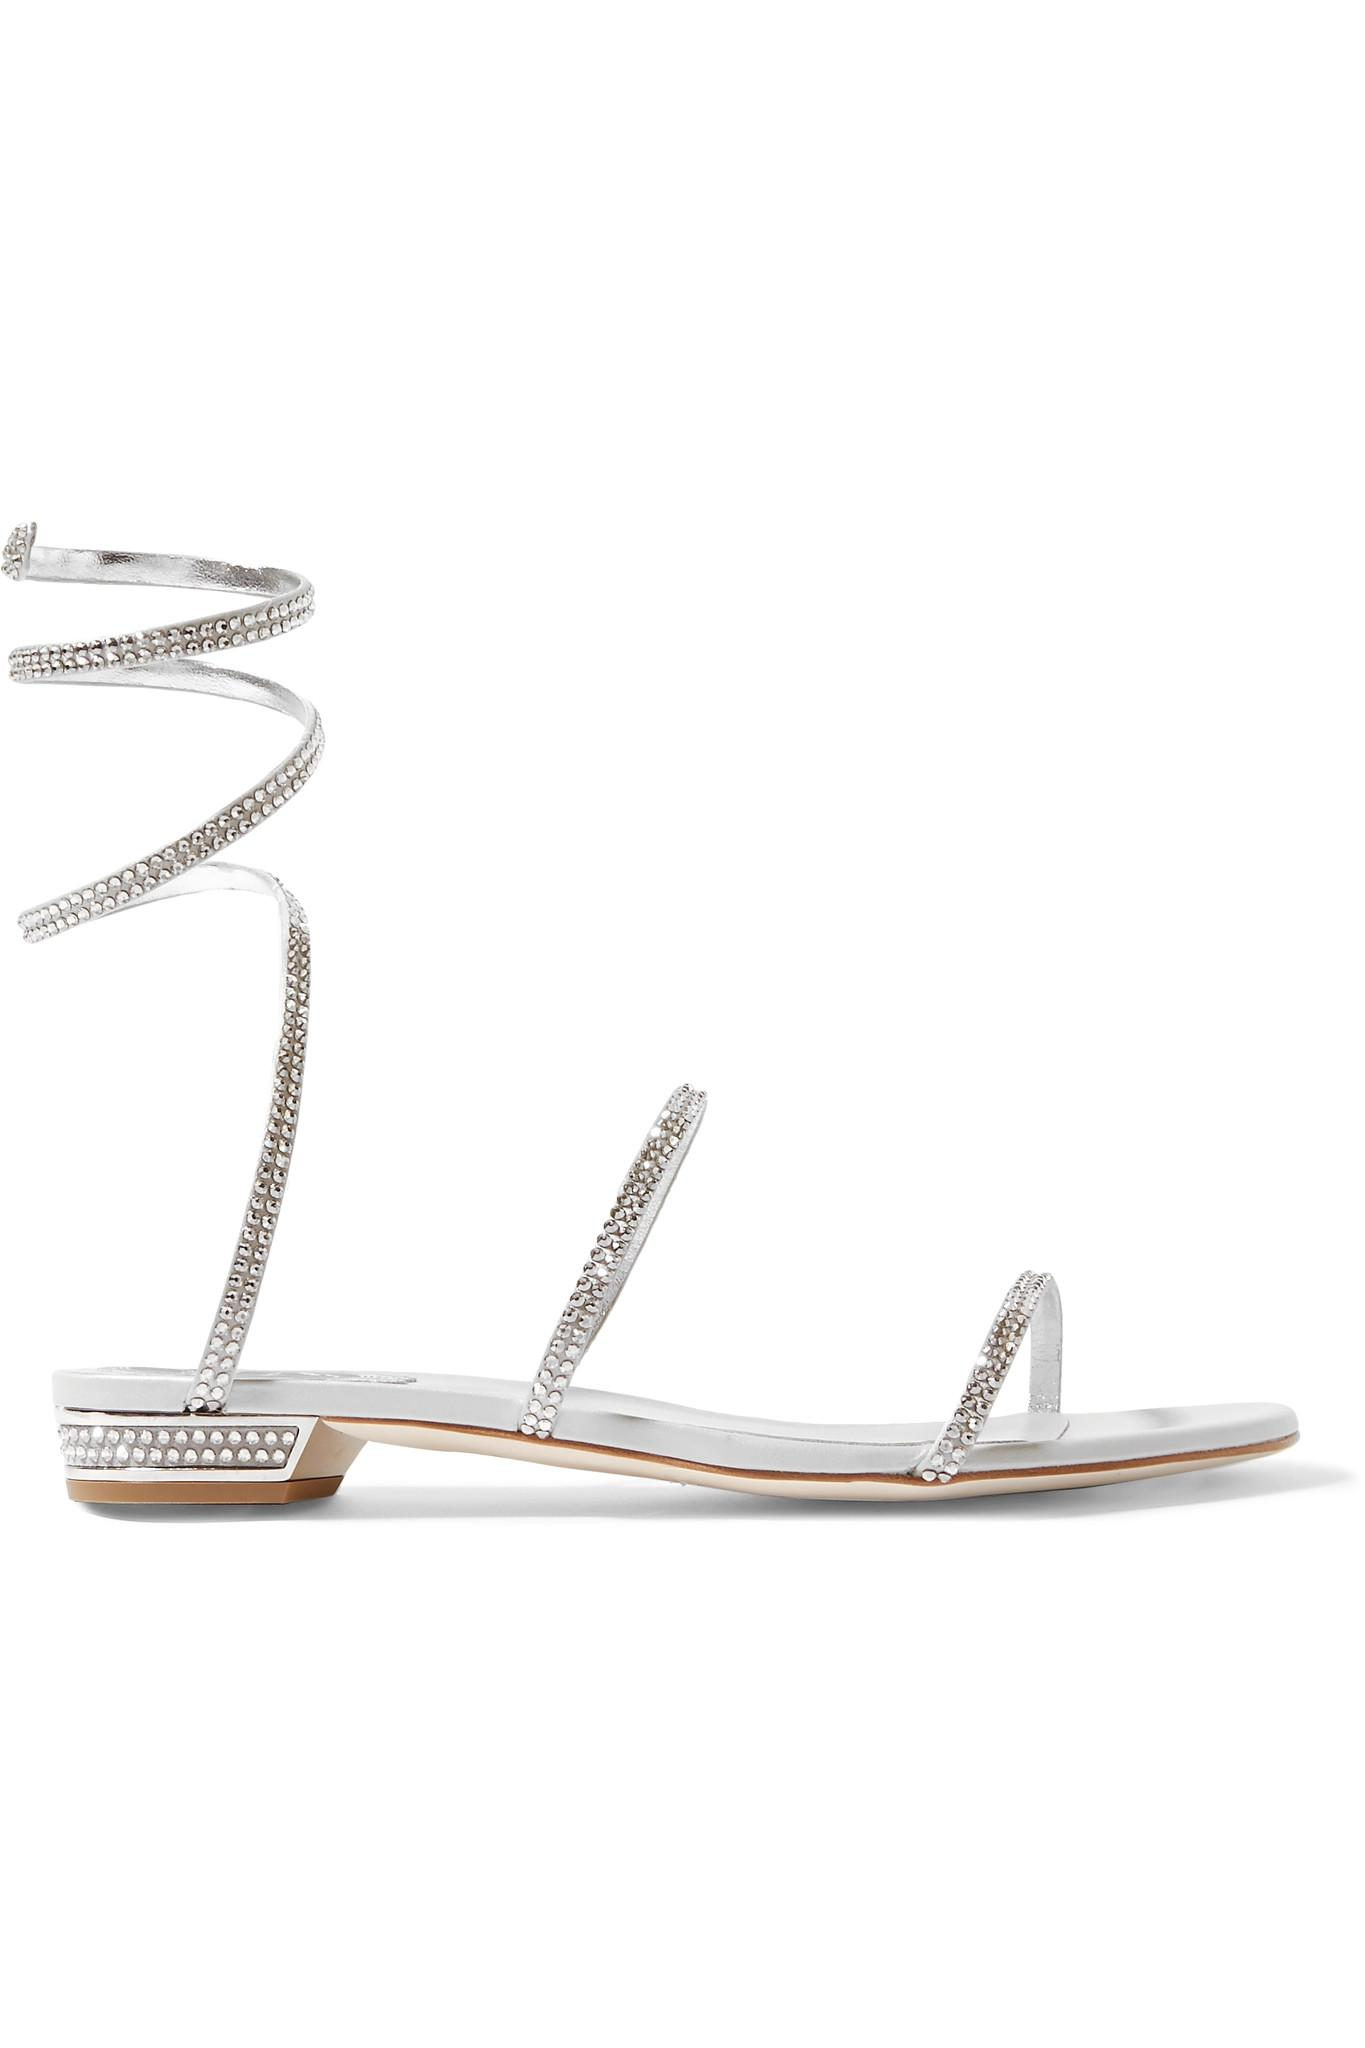 ad40ba082cbade Rene Caovilla. Women s Cleo Crystal-embellished Metallic Leather Sandals